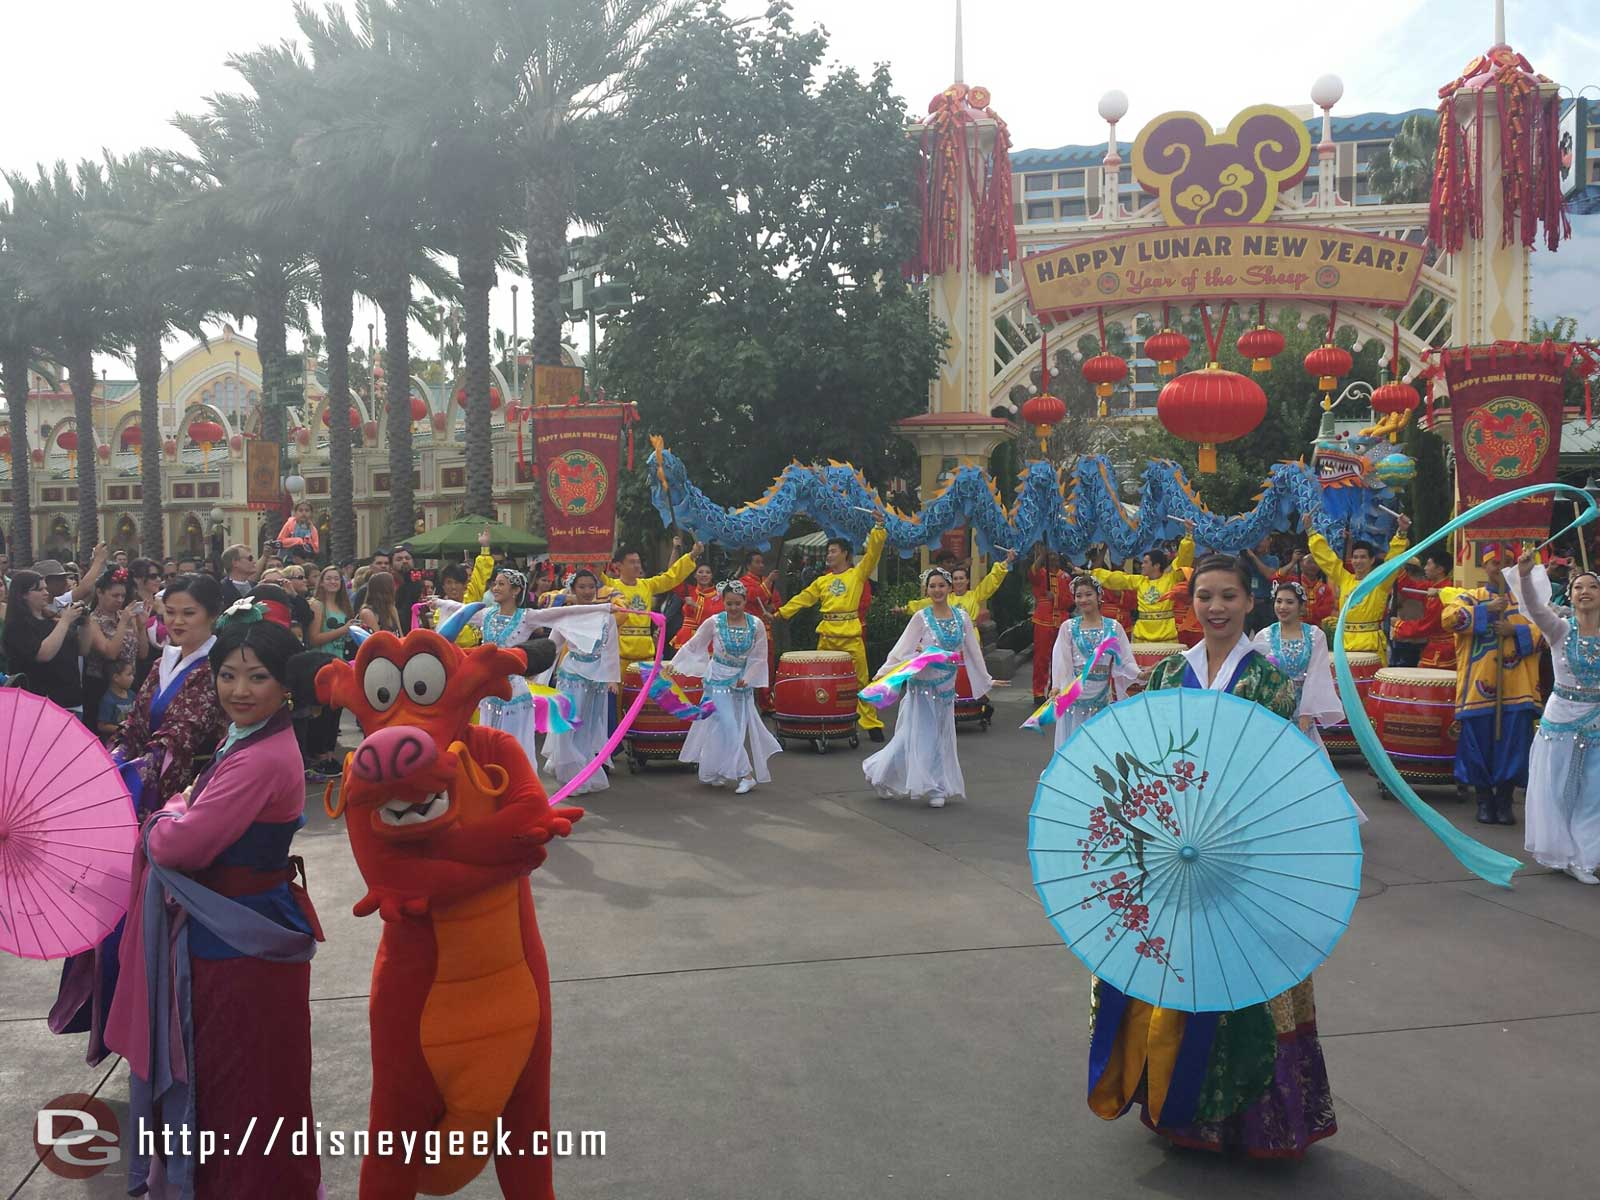 Mulan,  Mushu, other performers at the Happy Lunar New year celebration